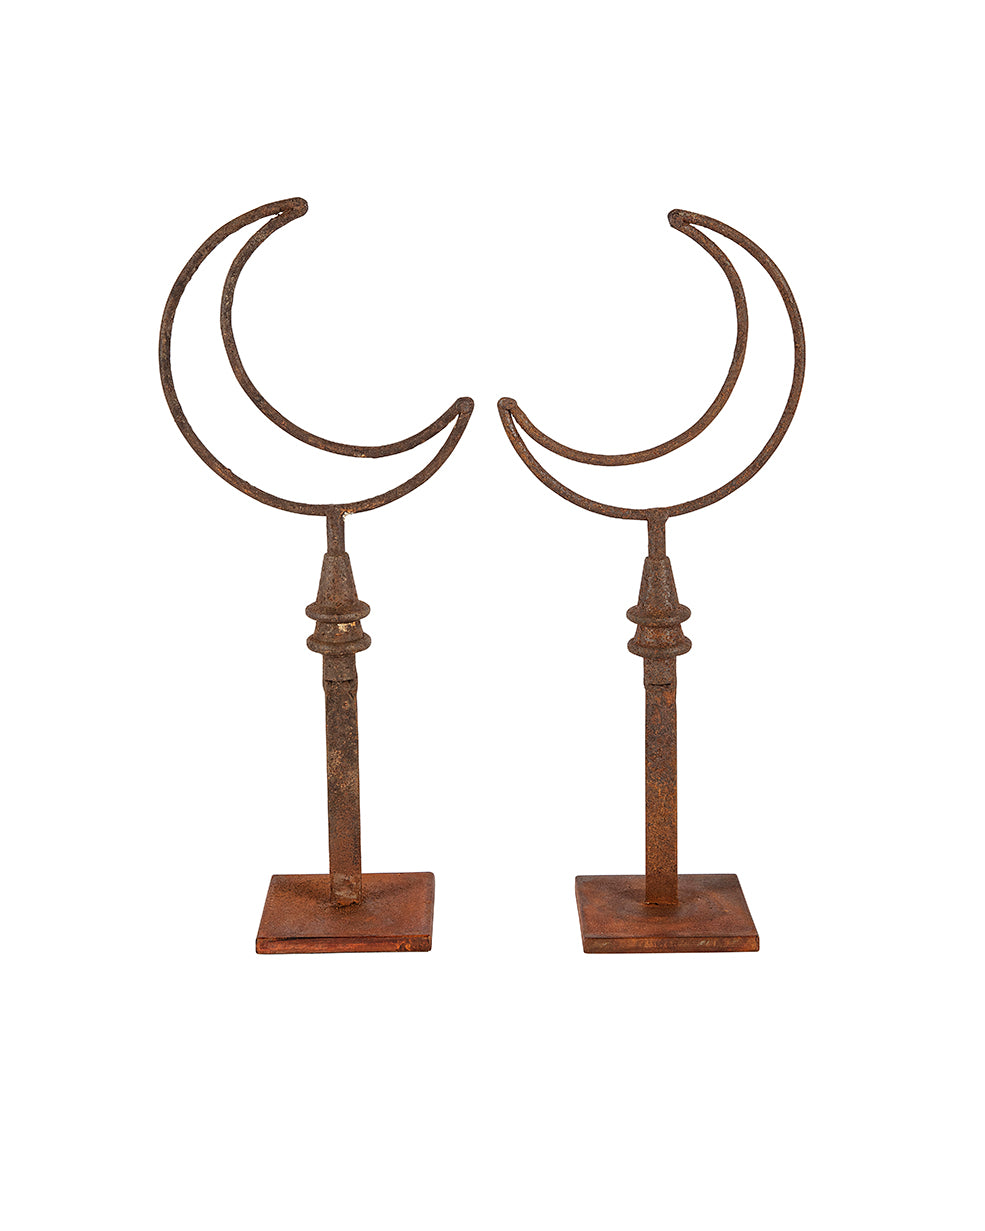 Pair of moon-shaped iron sculptures